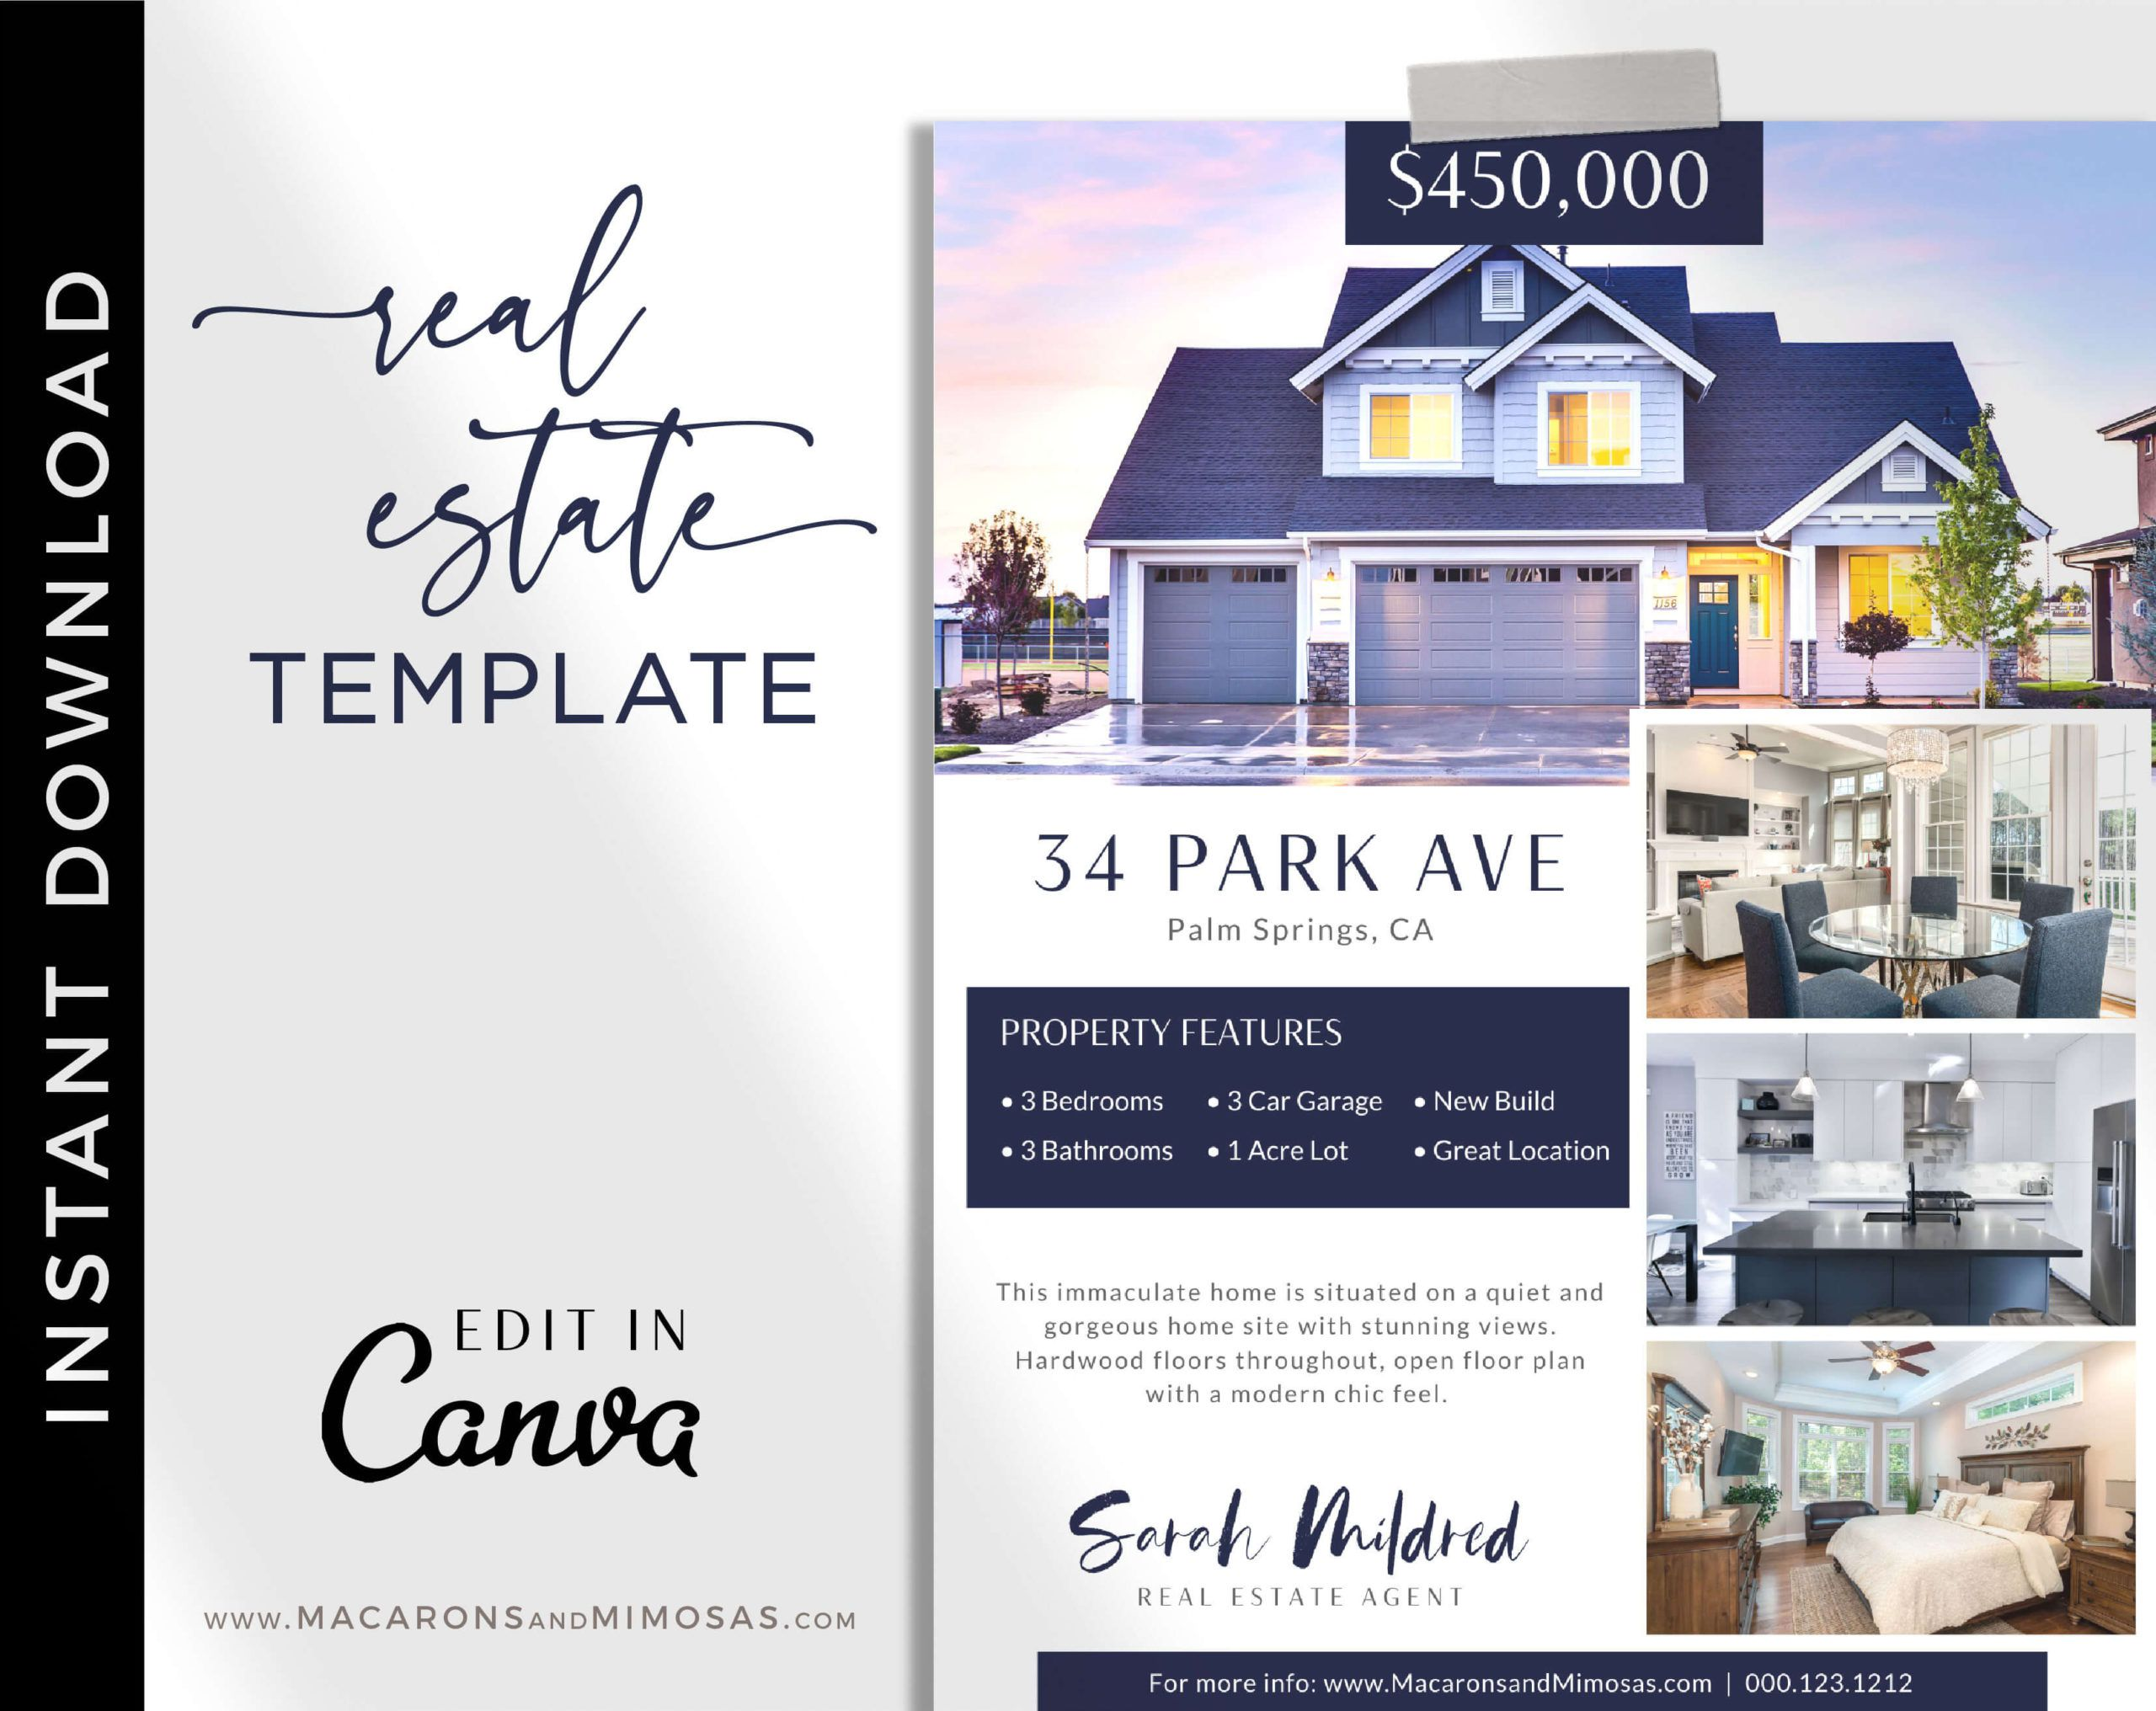 005 Beautiful House For Sale Flyer Template Sample  Free Real Estate Example By OwnerFull